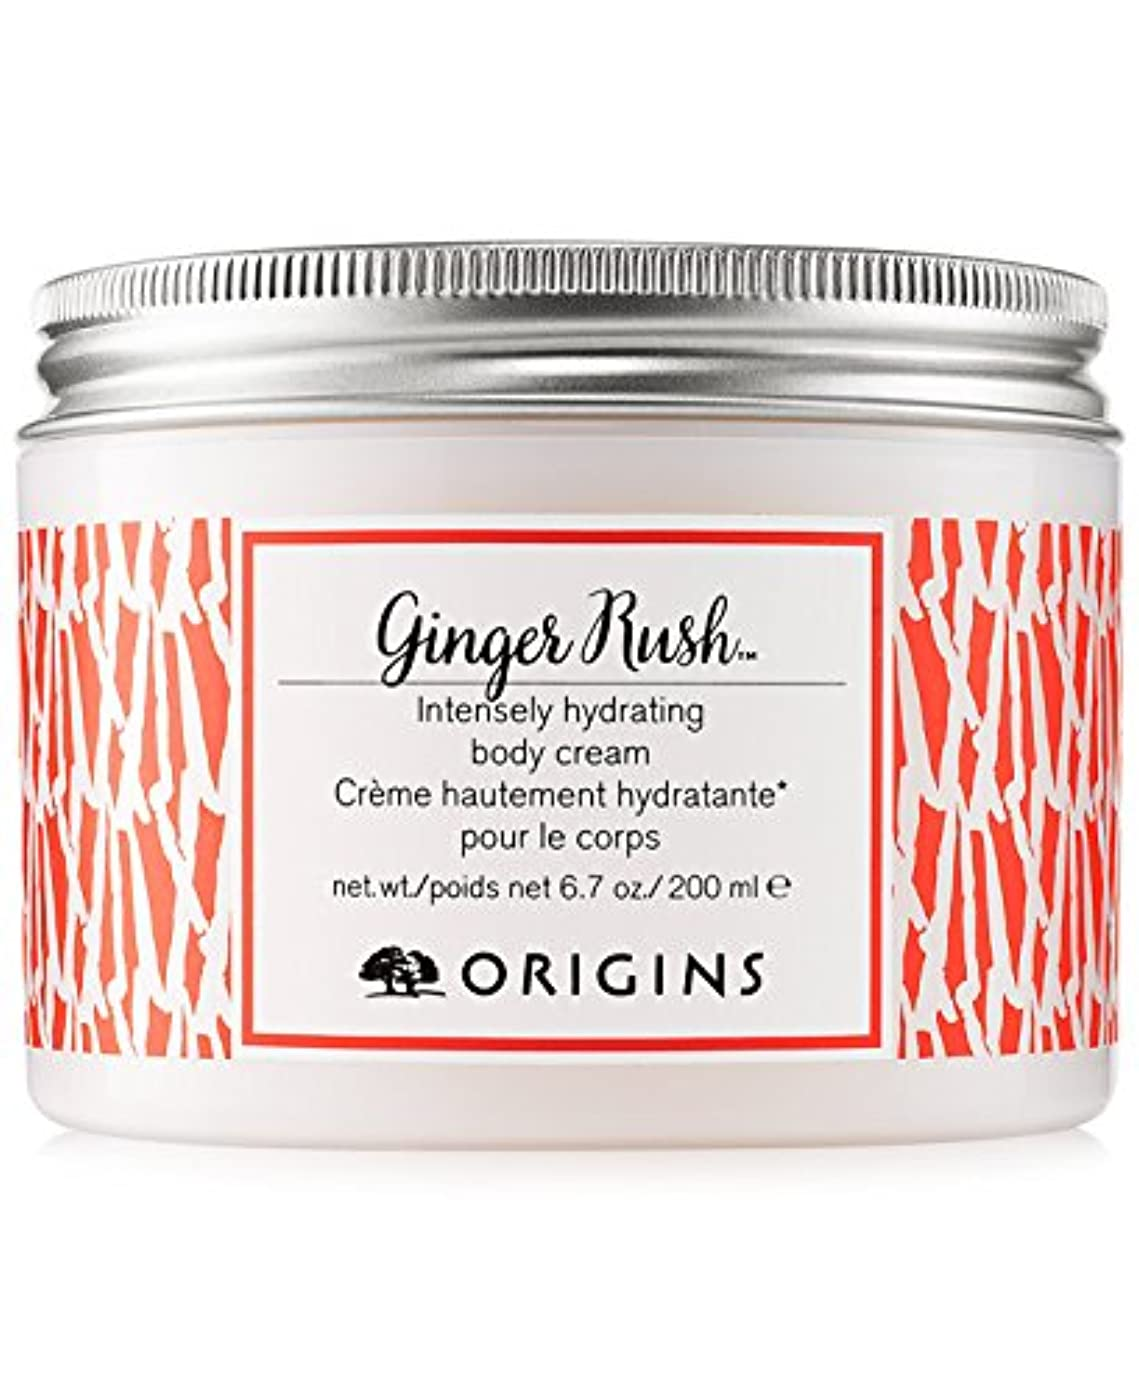 ビヨン雨の狂うOrigins Ginger Rush Hydrating Body Cream, 6.7 oz.200 ml